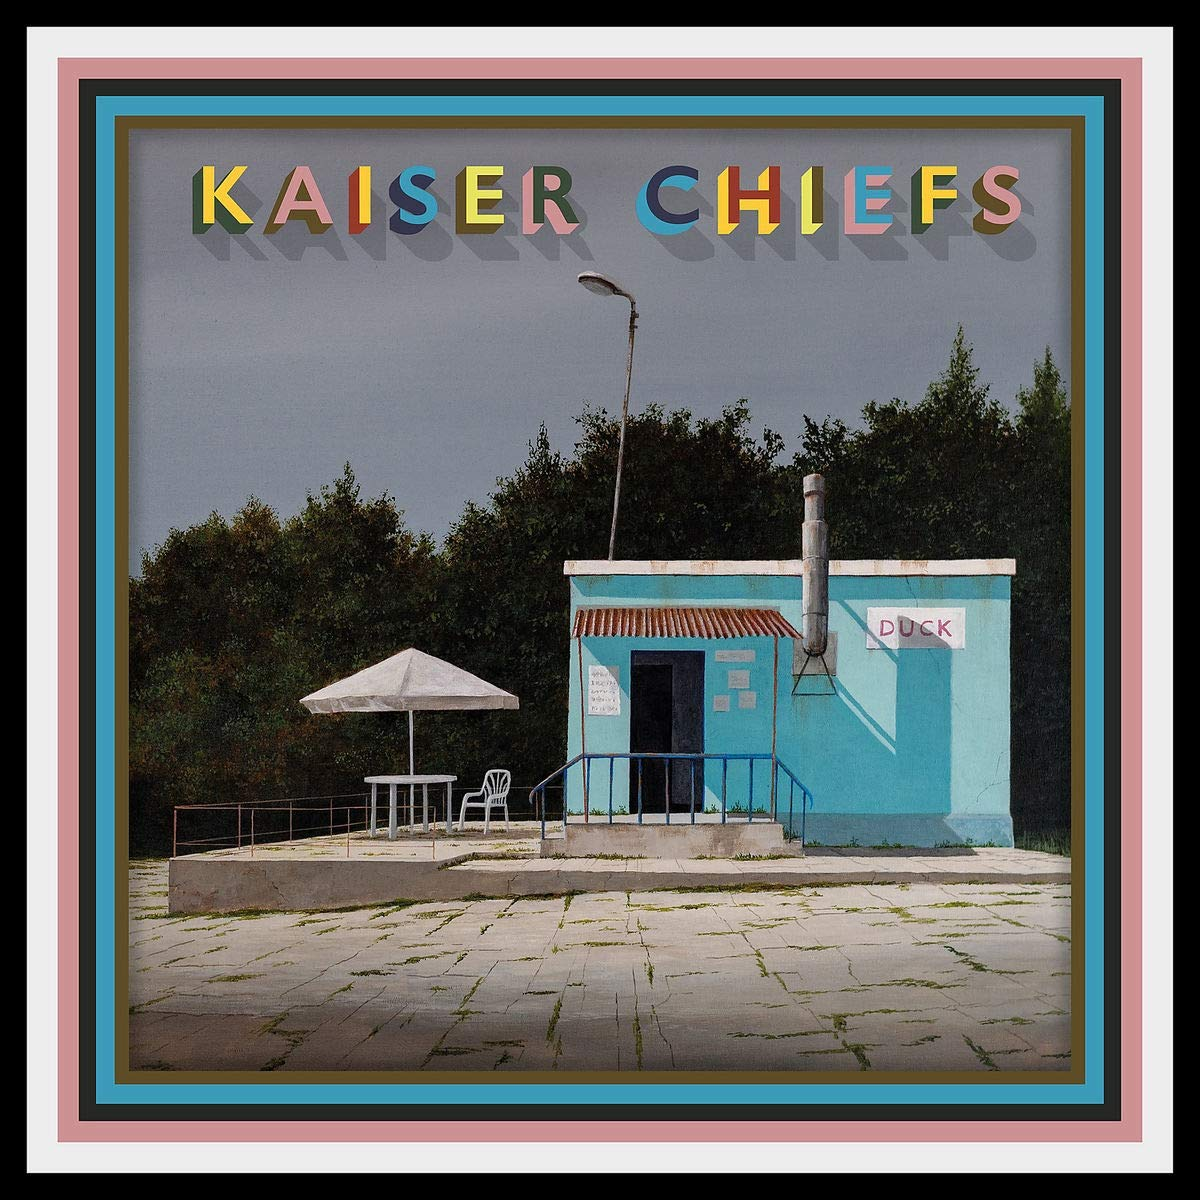 CD Shop - KAISER CHIEFS DUCK